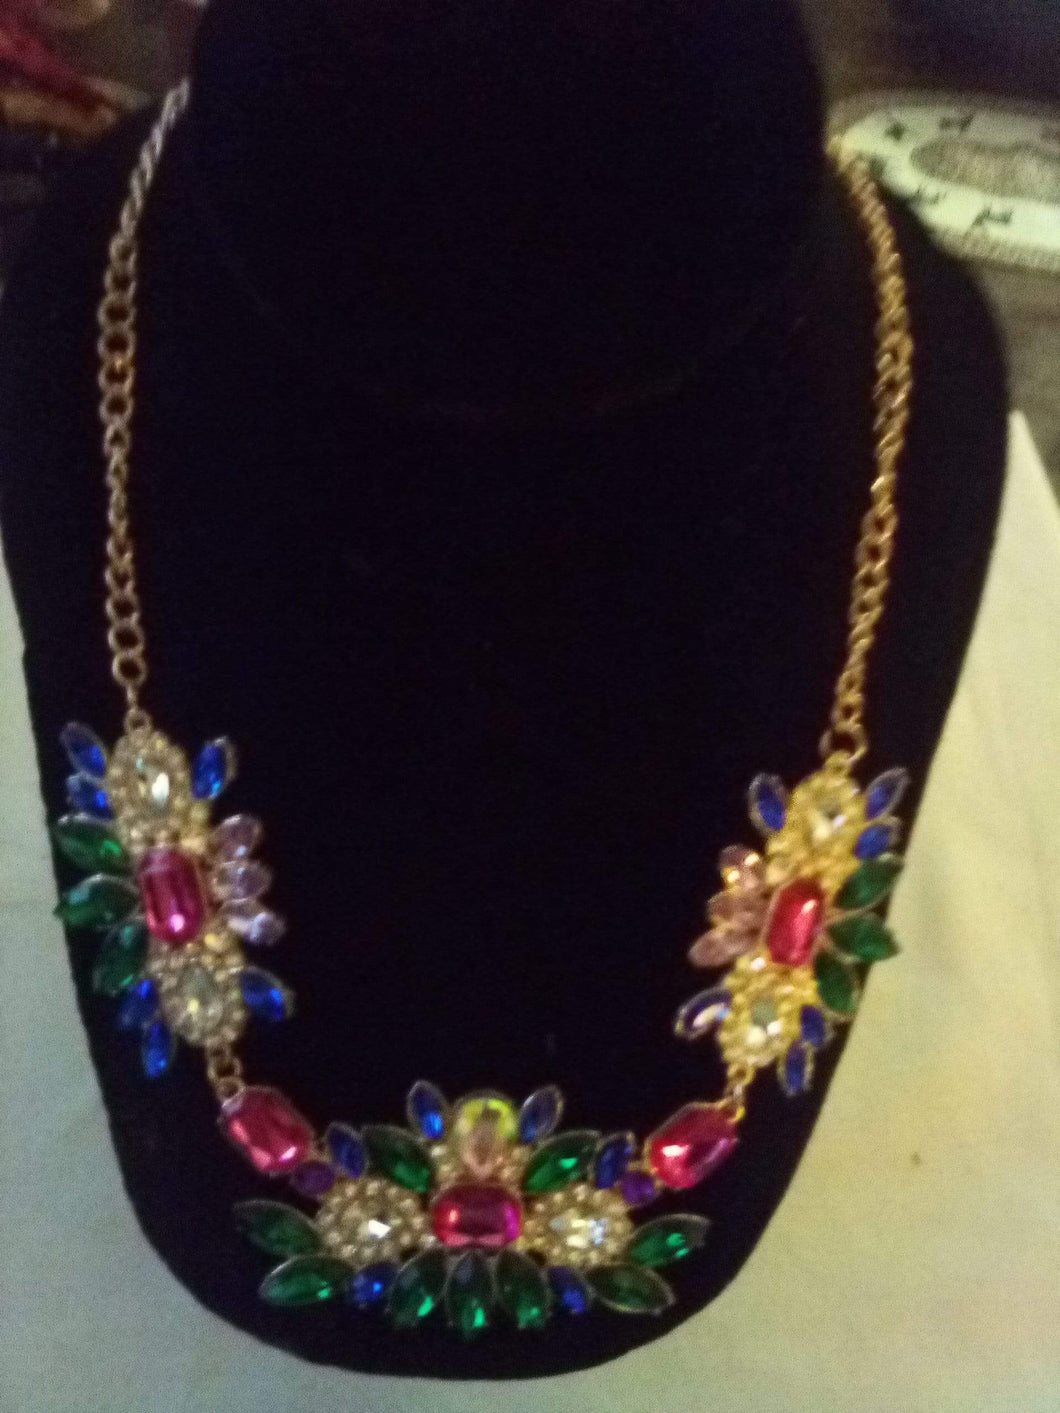 Colorful brand new necklace - B&P'sringsnthings